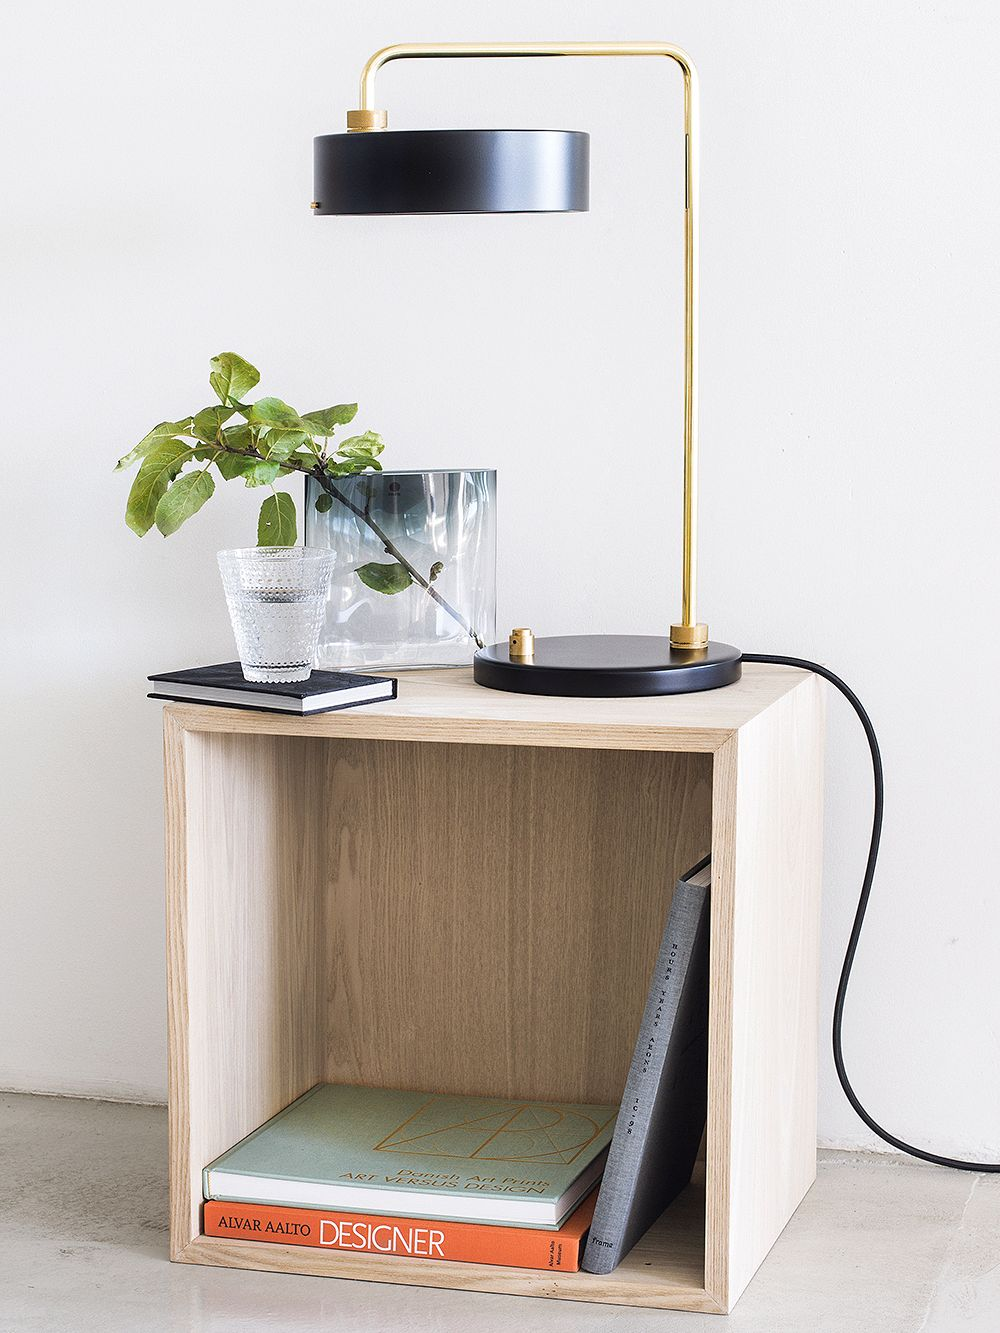 Made By Hand Petite Machine table lamp